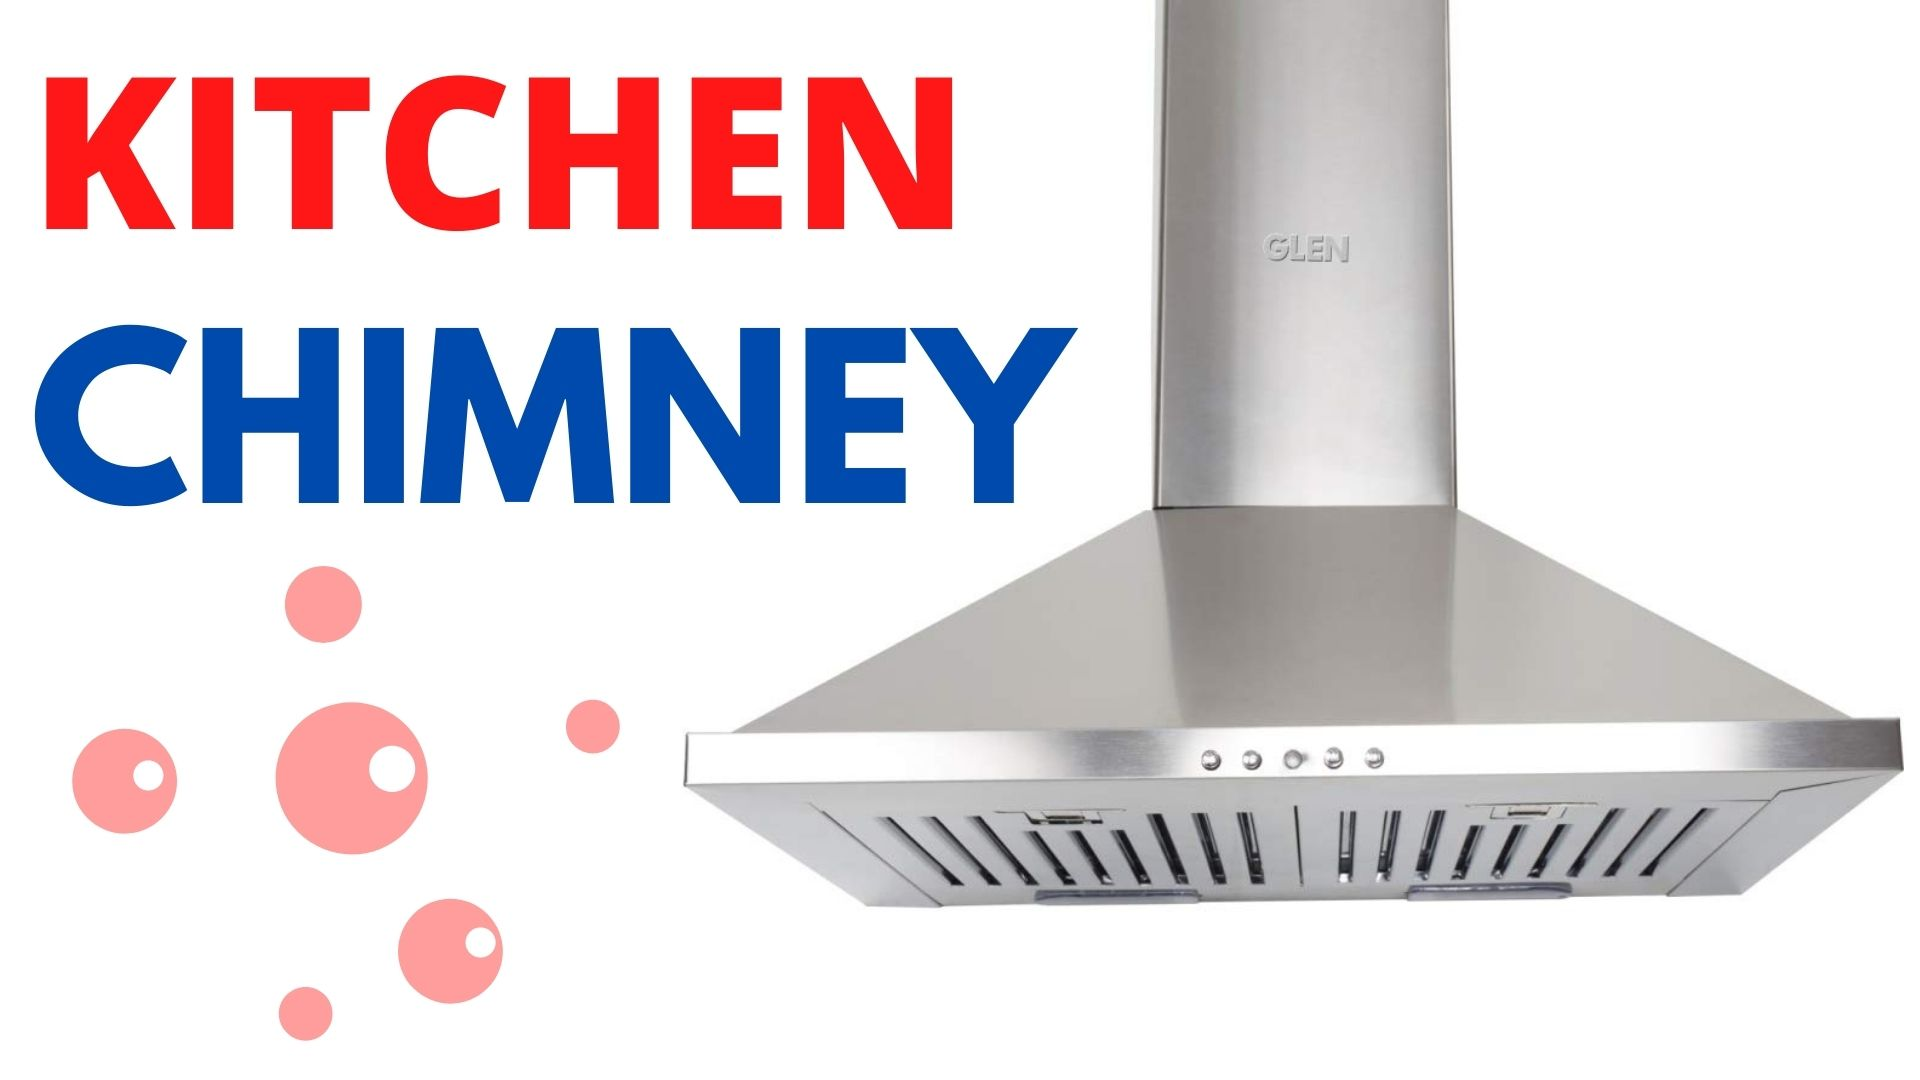 Best Kitchen Chimney